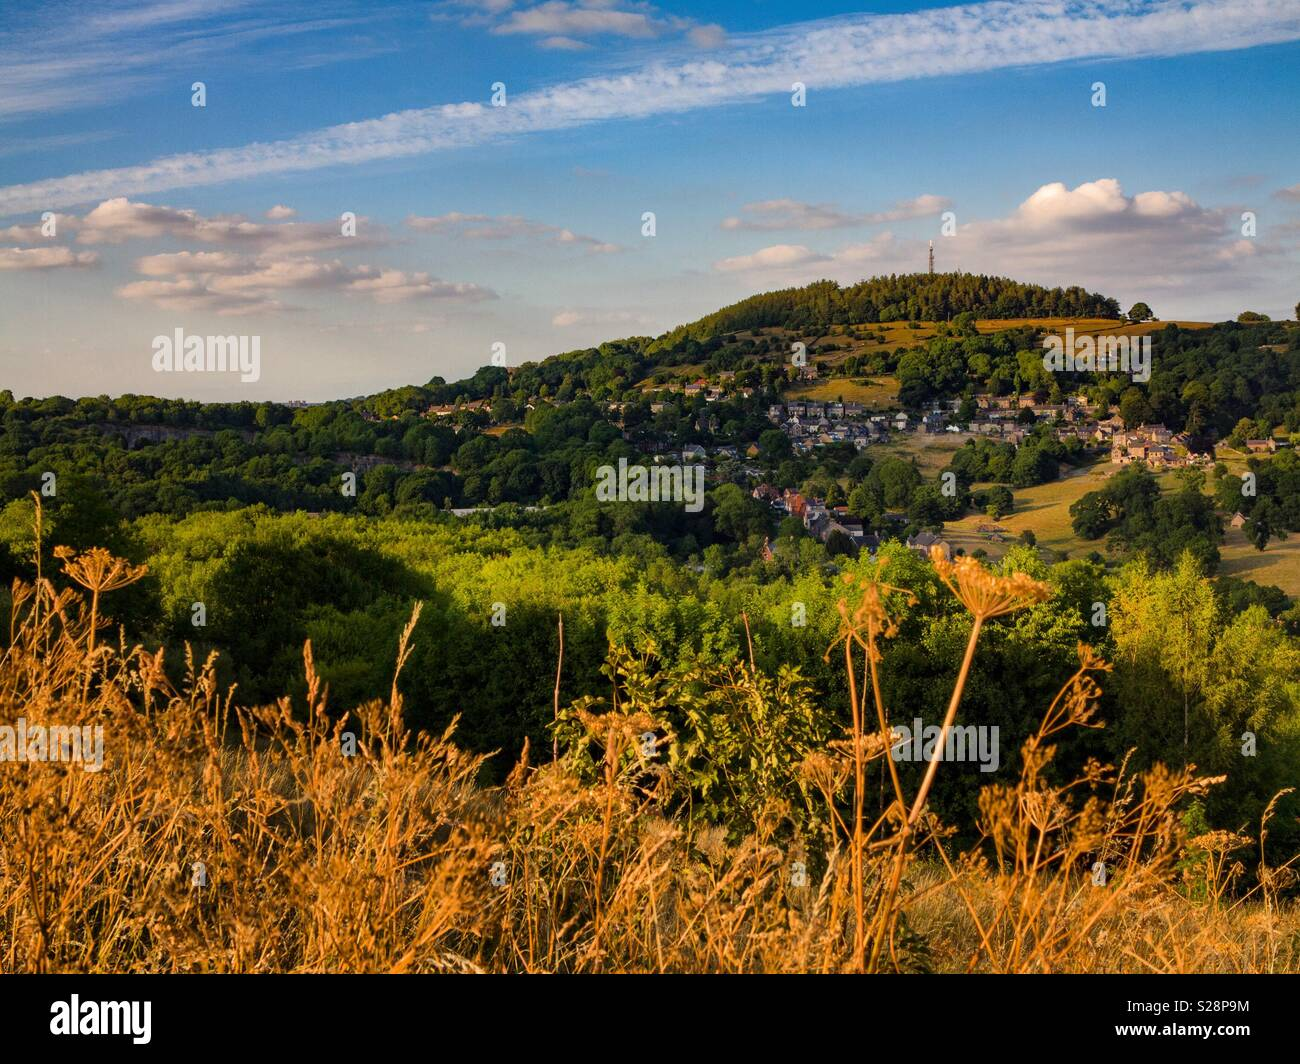 View over the hills near Wirksworth in the Derbyshire Peak District towards Black Rocks England UK - Stock Image